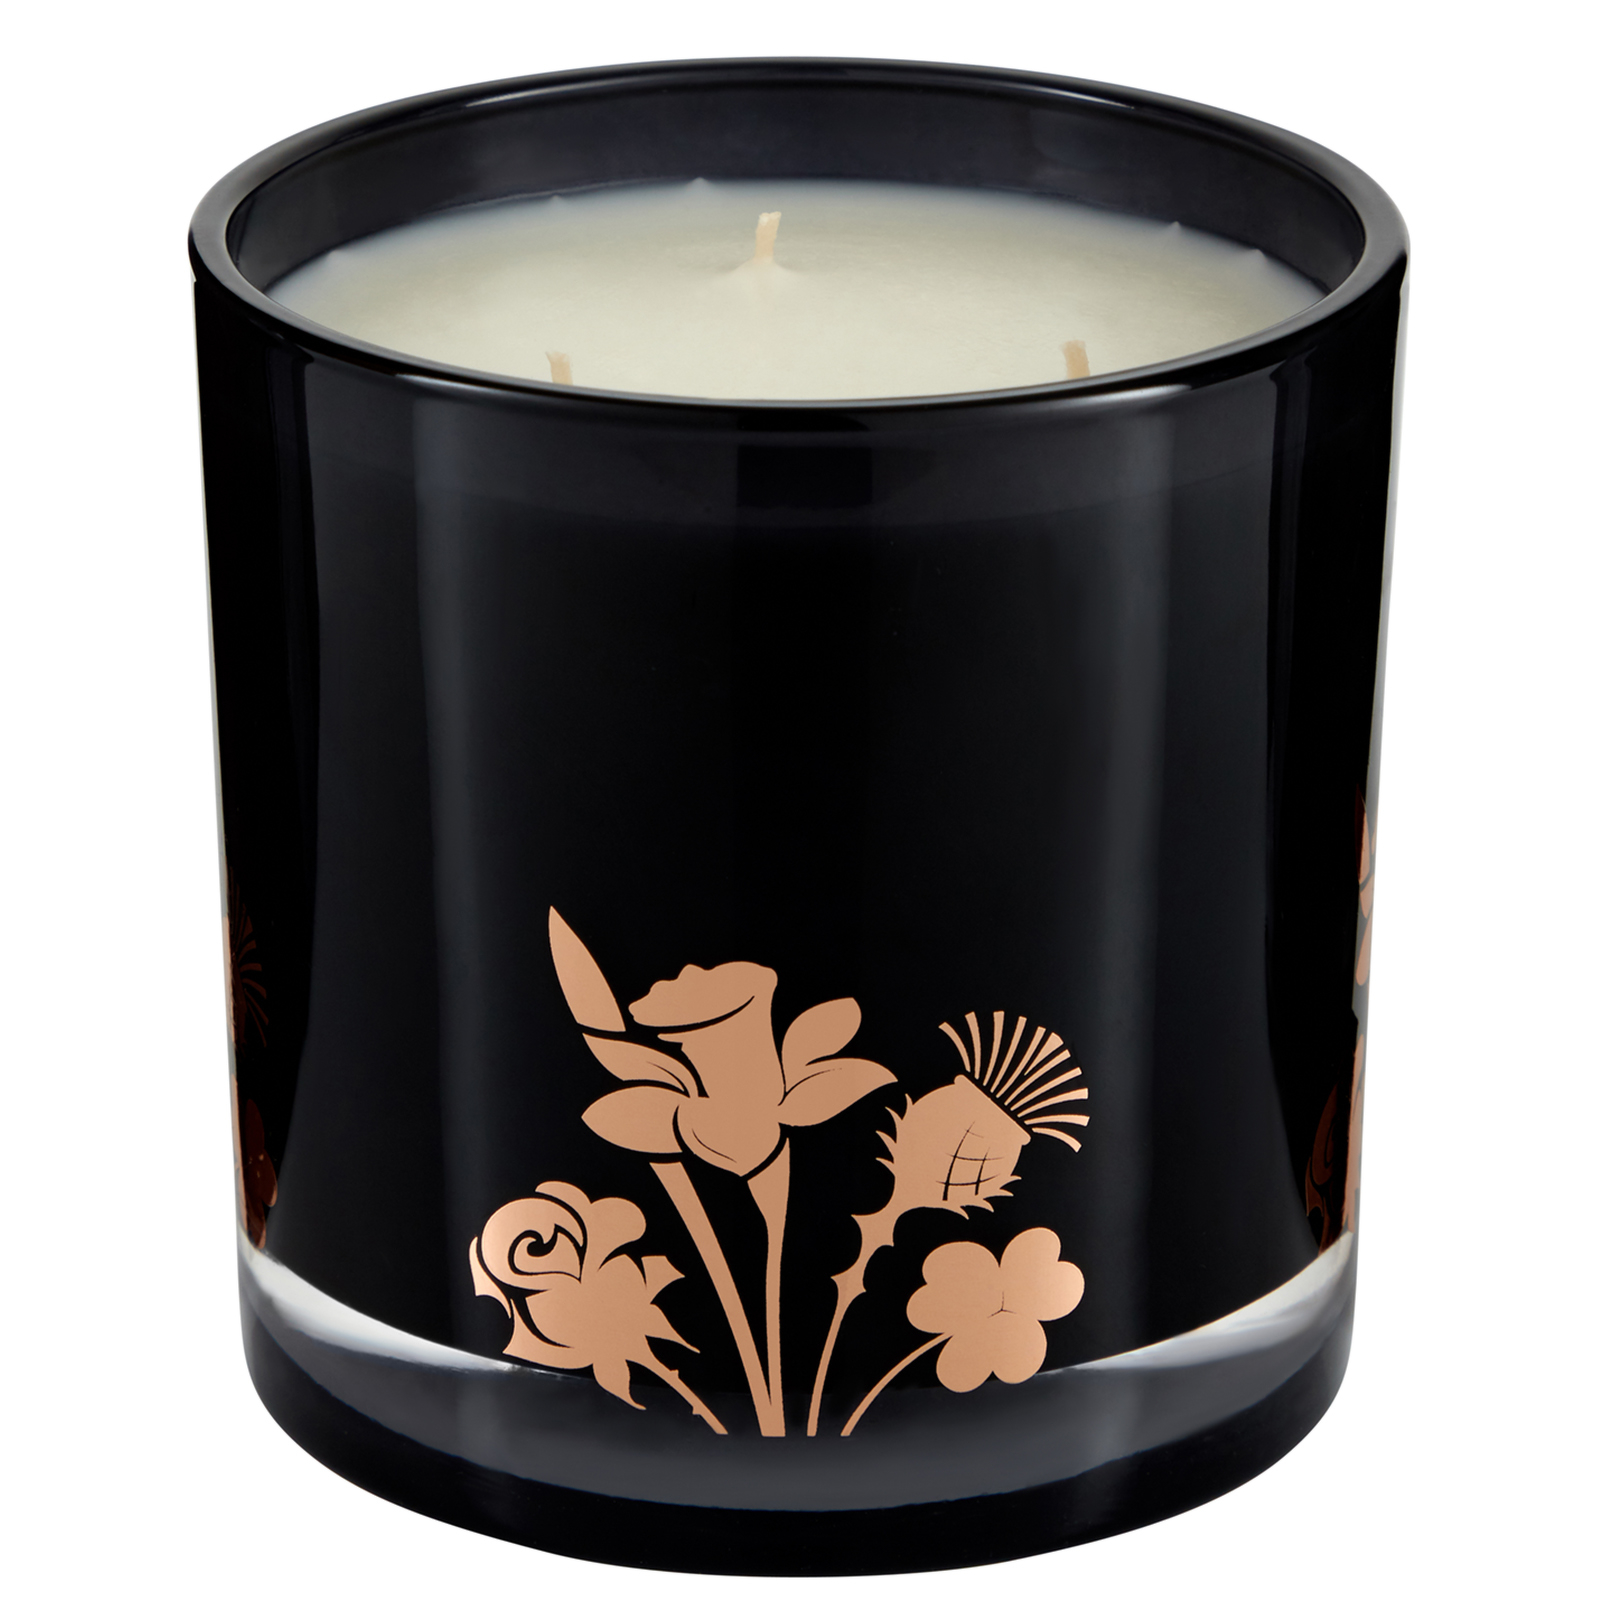 Noble Isle Christmas 2020 Fireside Glow Three Wick Candle 640g